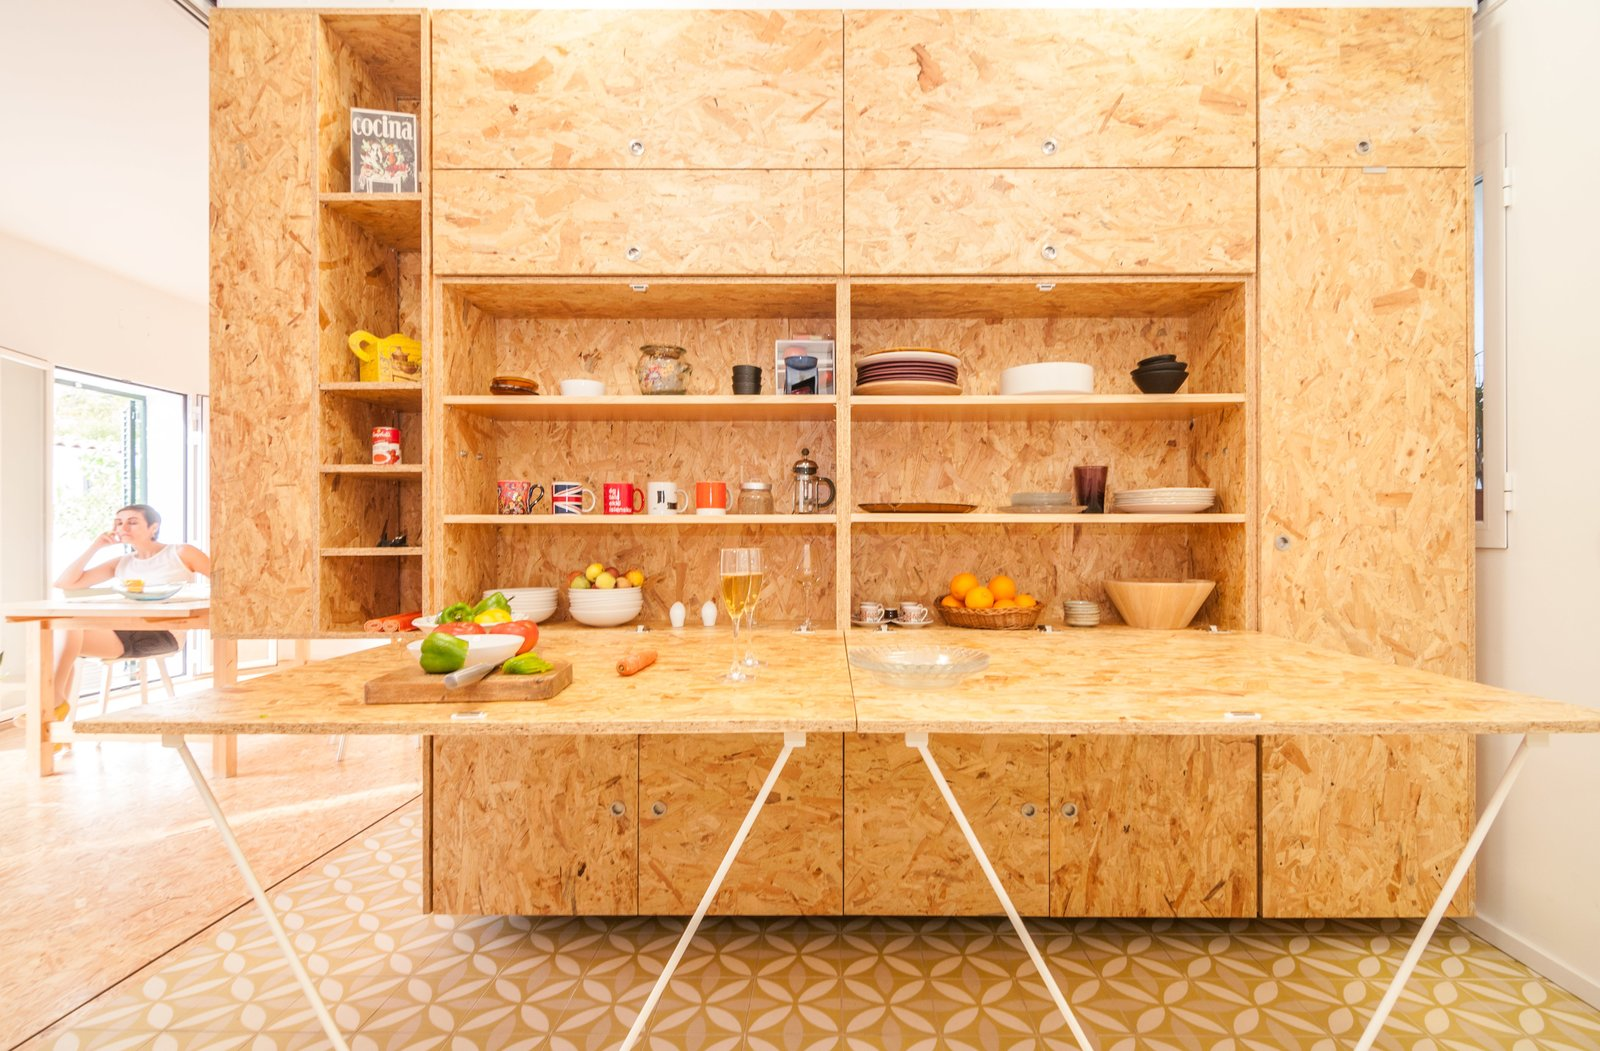 A drop-down countertop conceals dishware and other kitchen belongings.  Solutions For Tiny Kitchens by Aileen Kwun from Sliding Shelves Transform This Tiny Home Into Countless Configurations